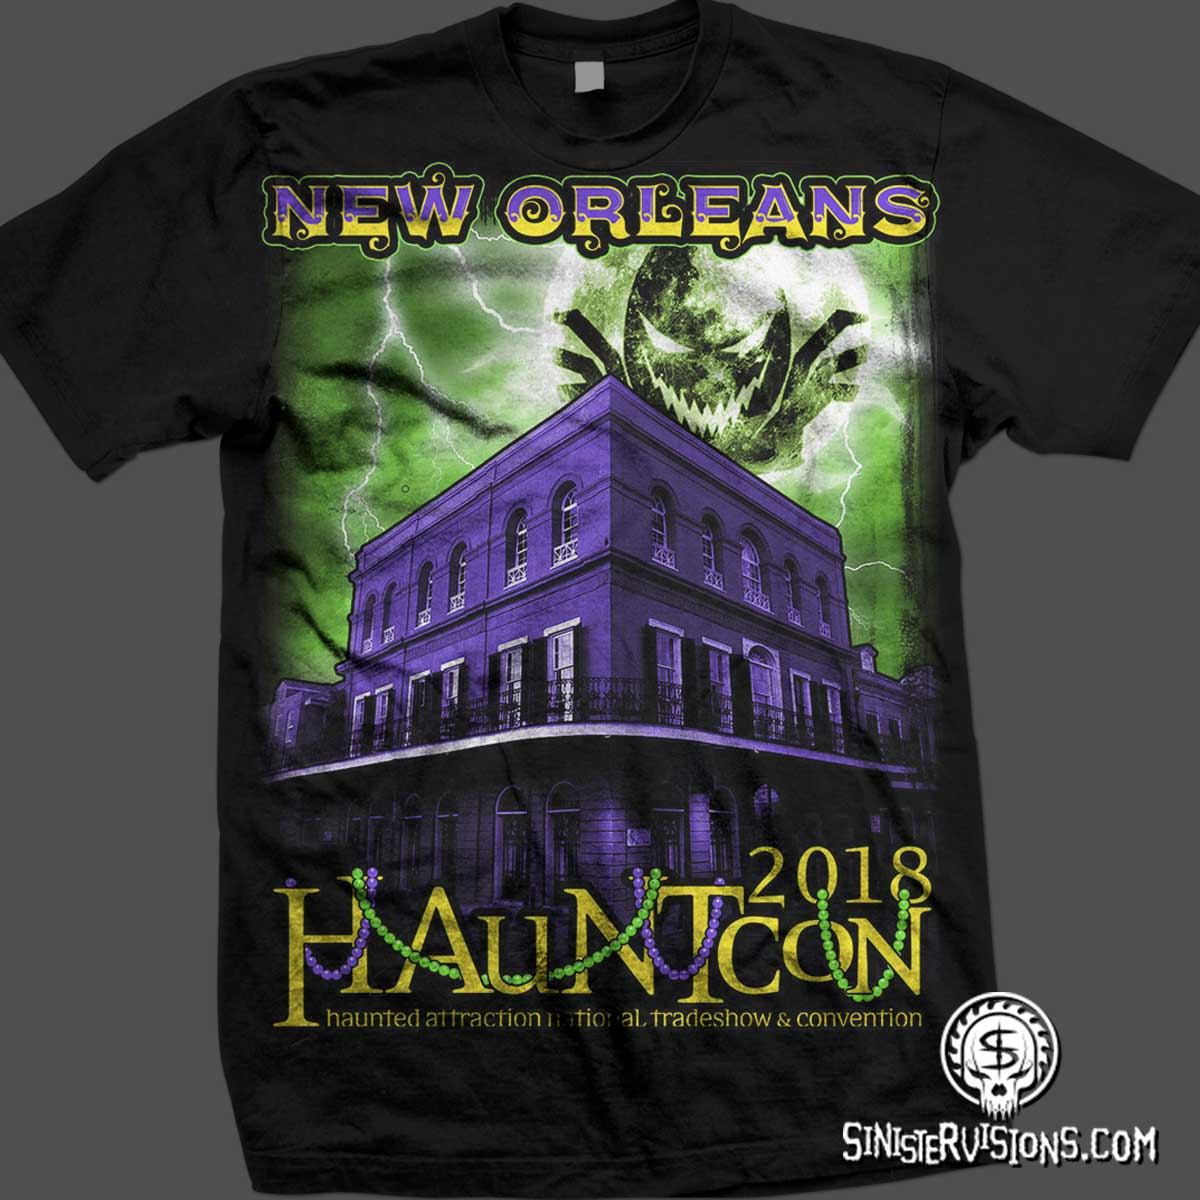 New T-Shirt Designs | Sinister Visions T Shirt Design For Haunted Houses Haunted